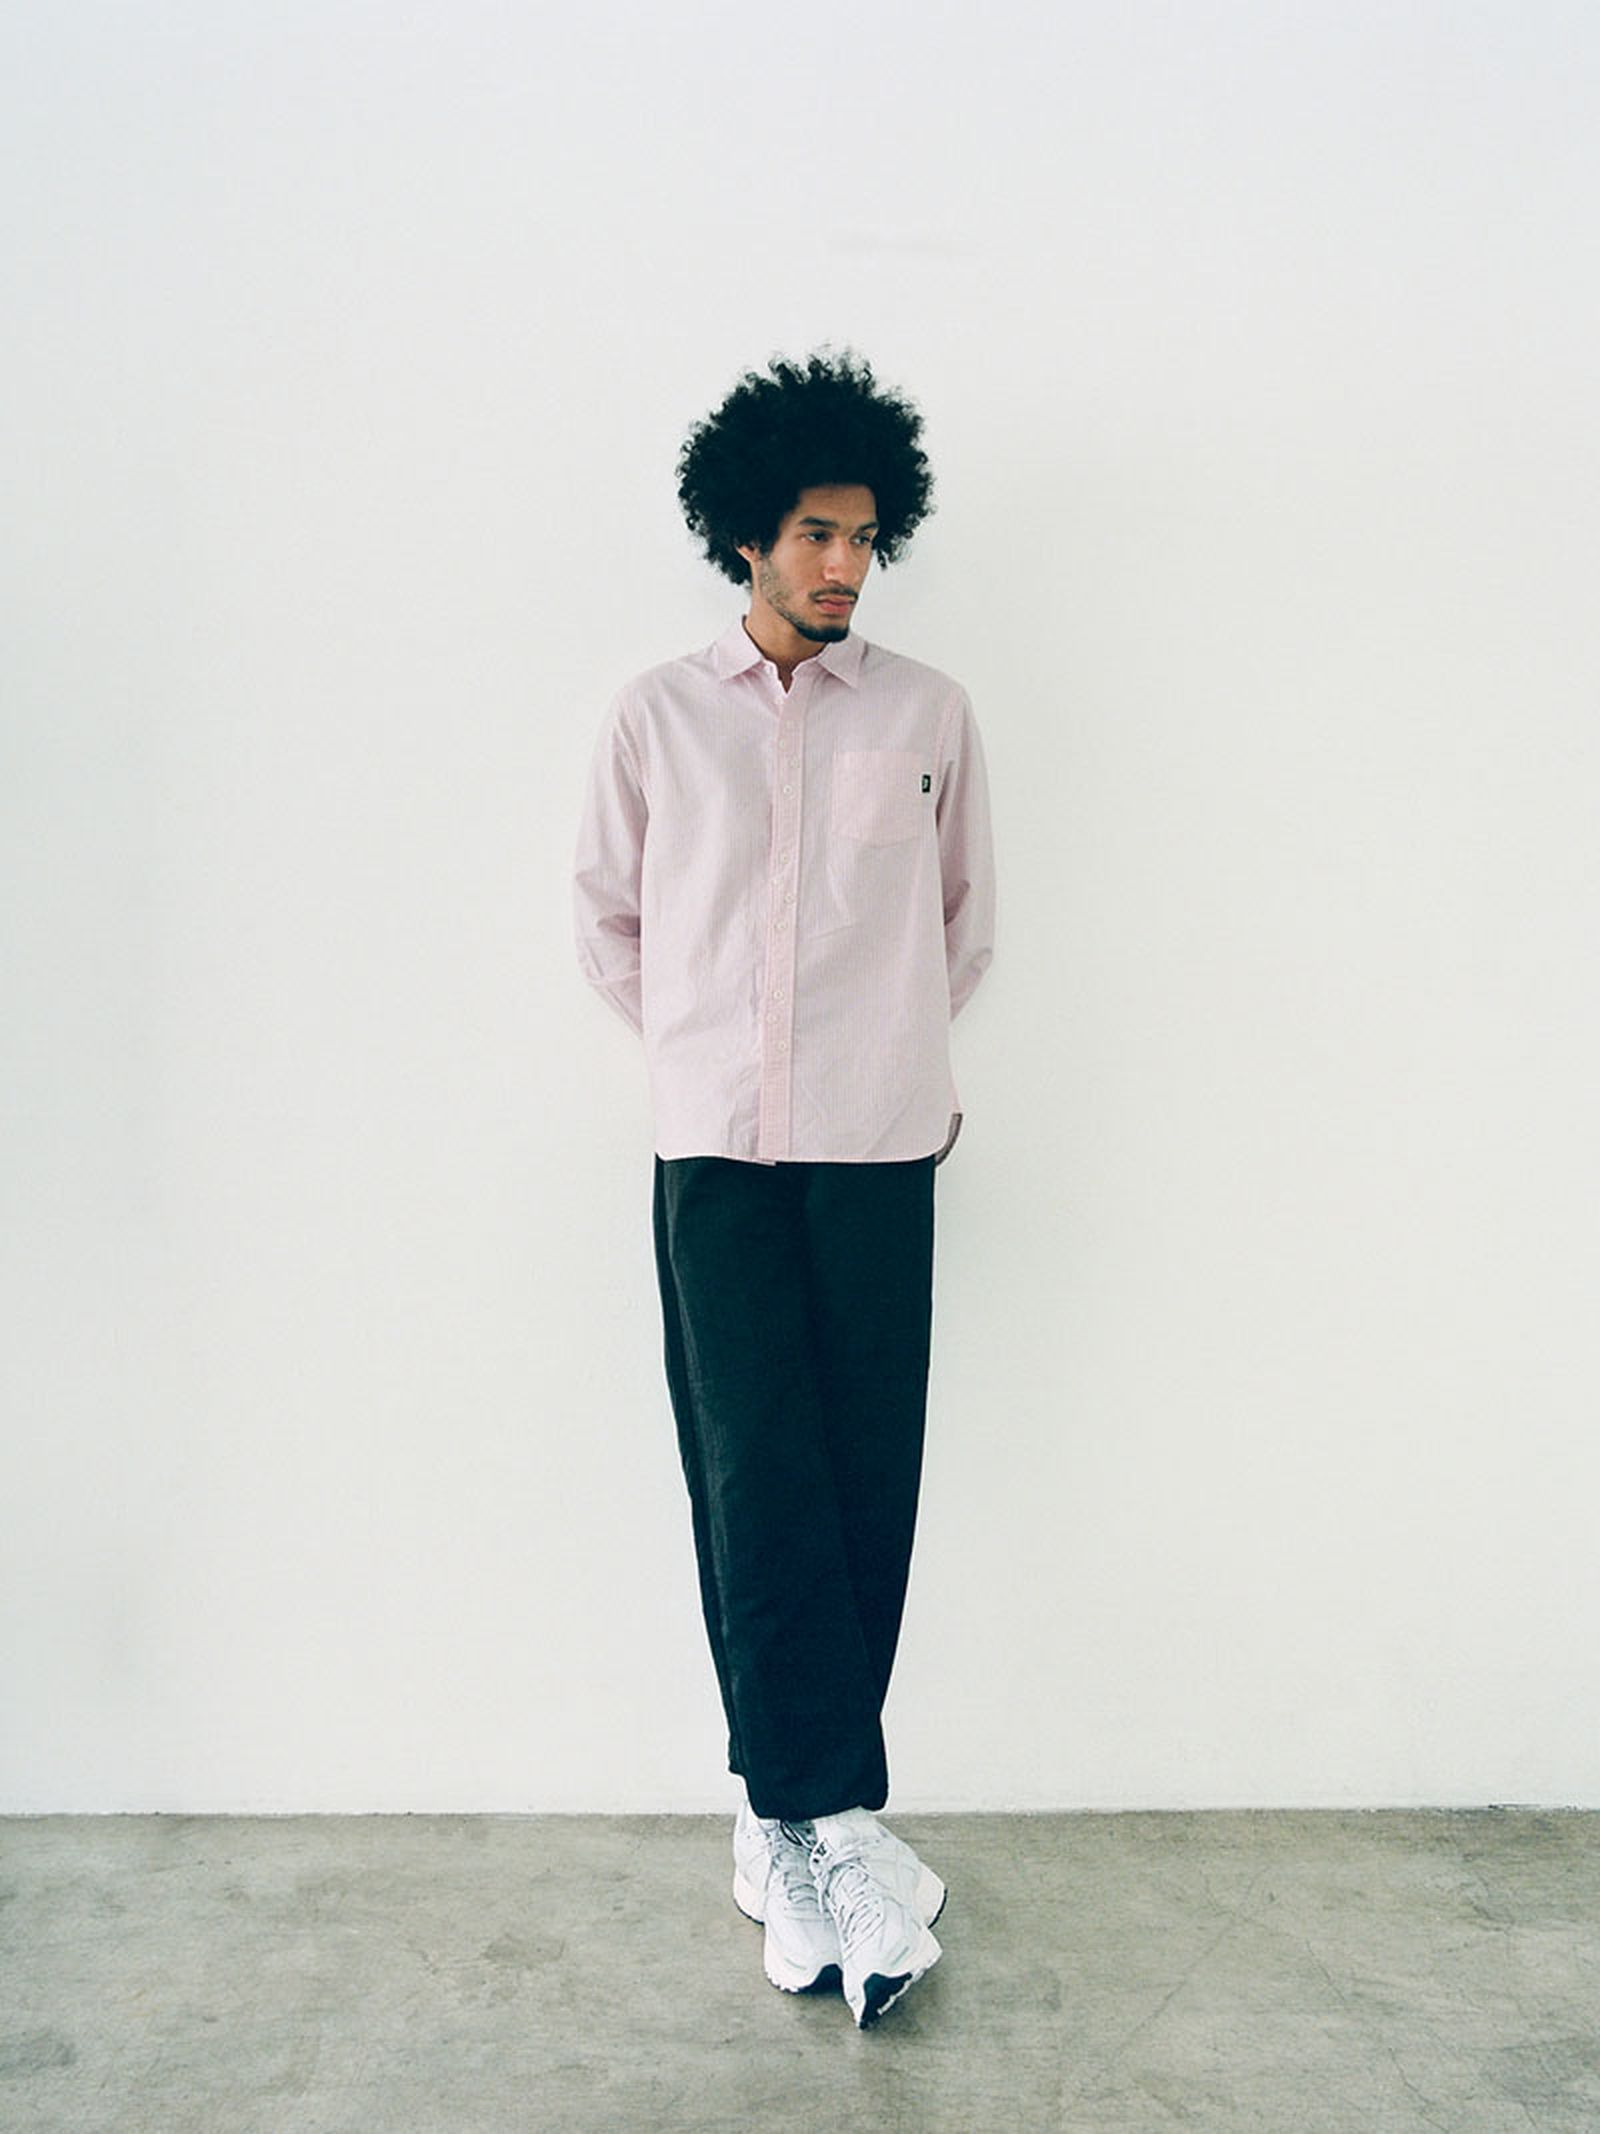 Stussy SP20 Lookbook - D1 Mens - 15